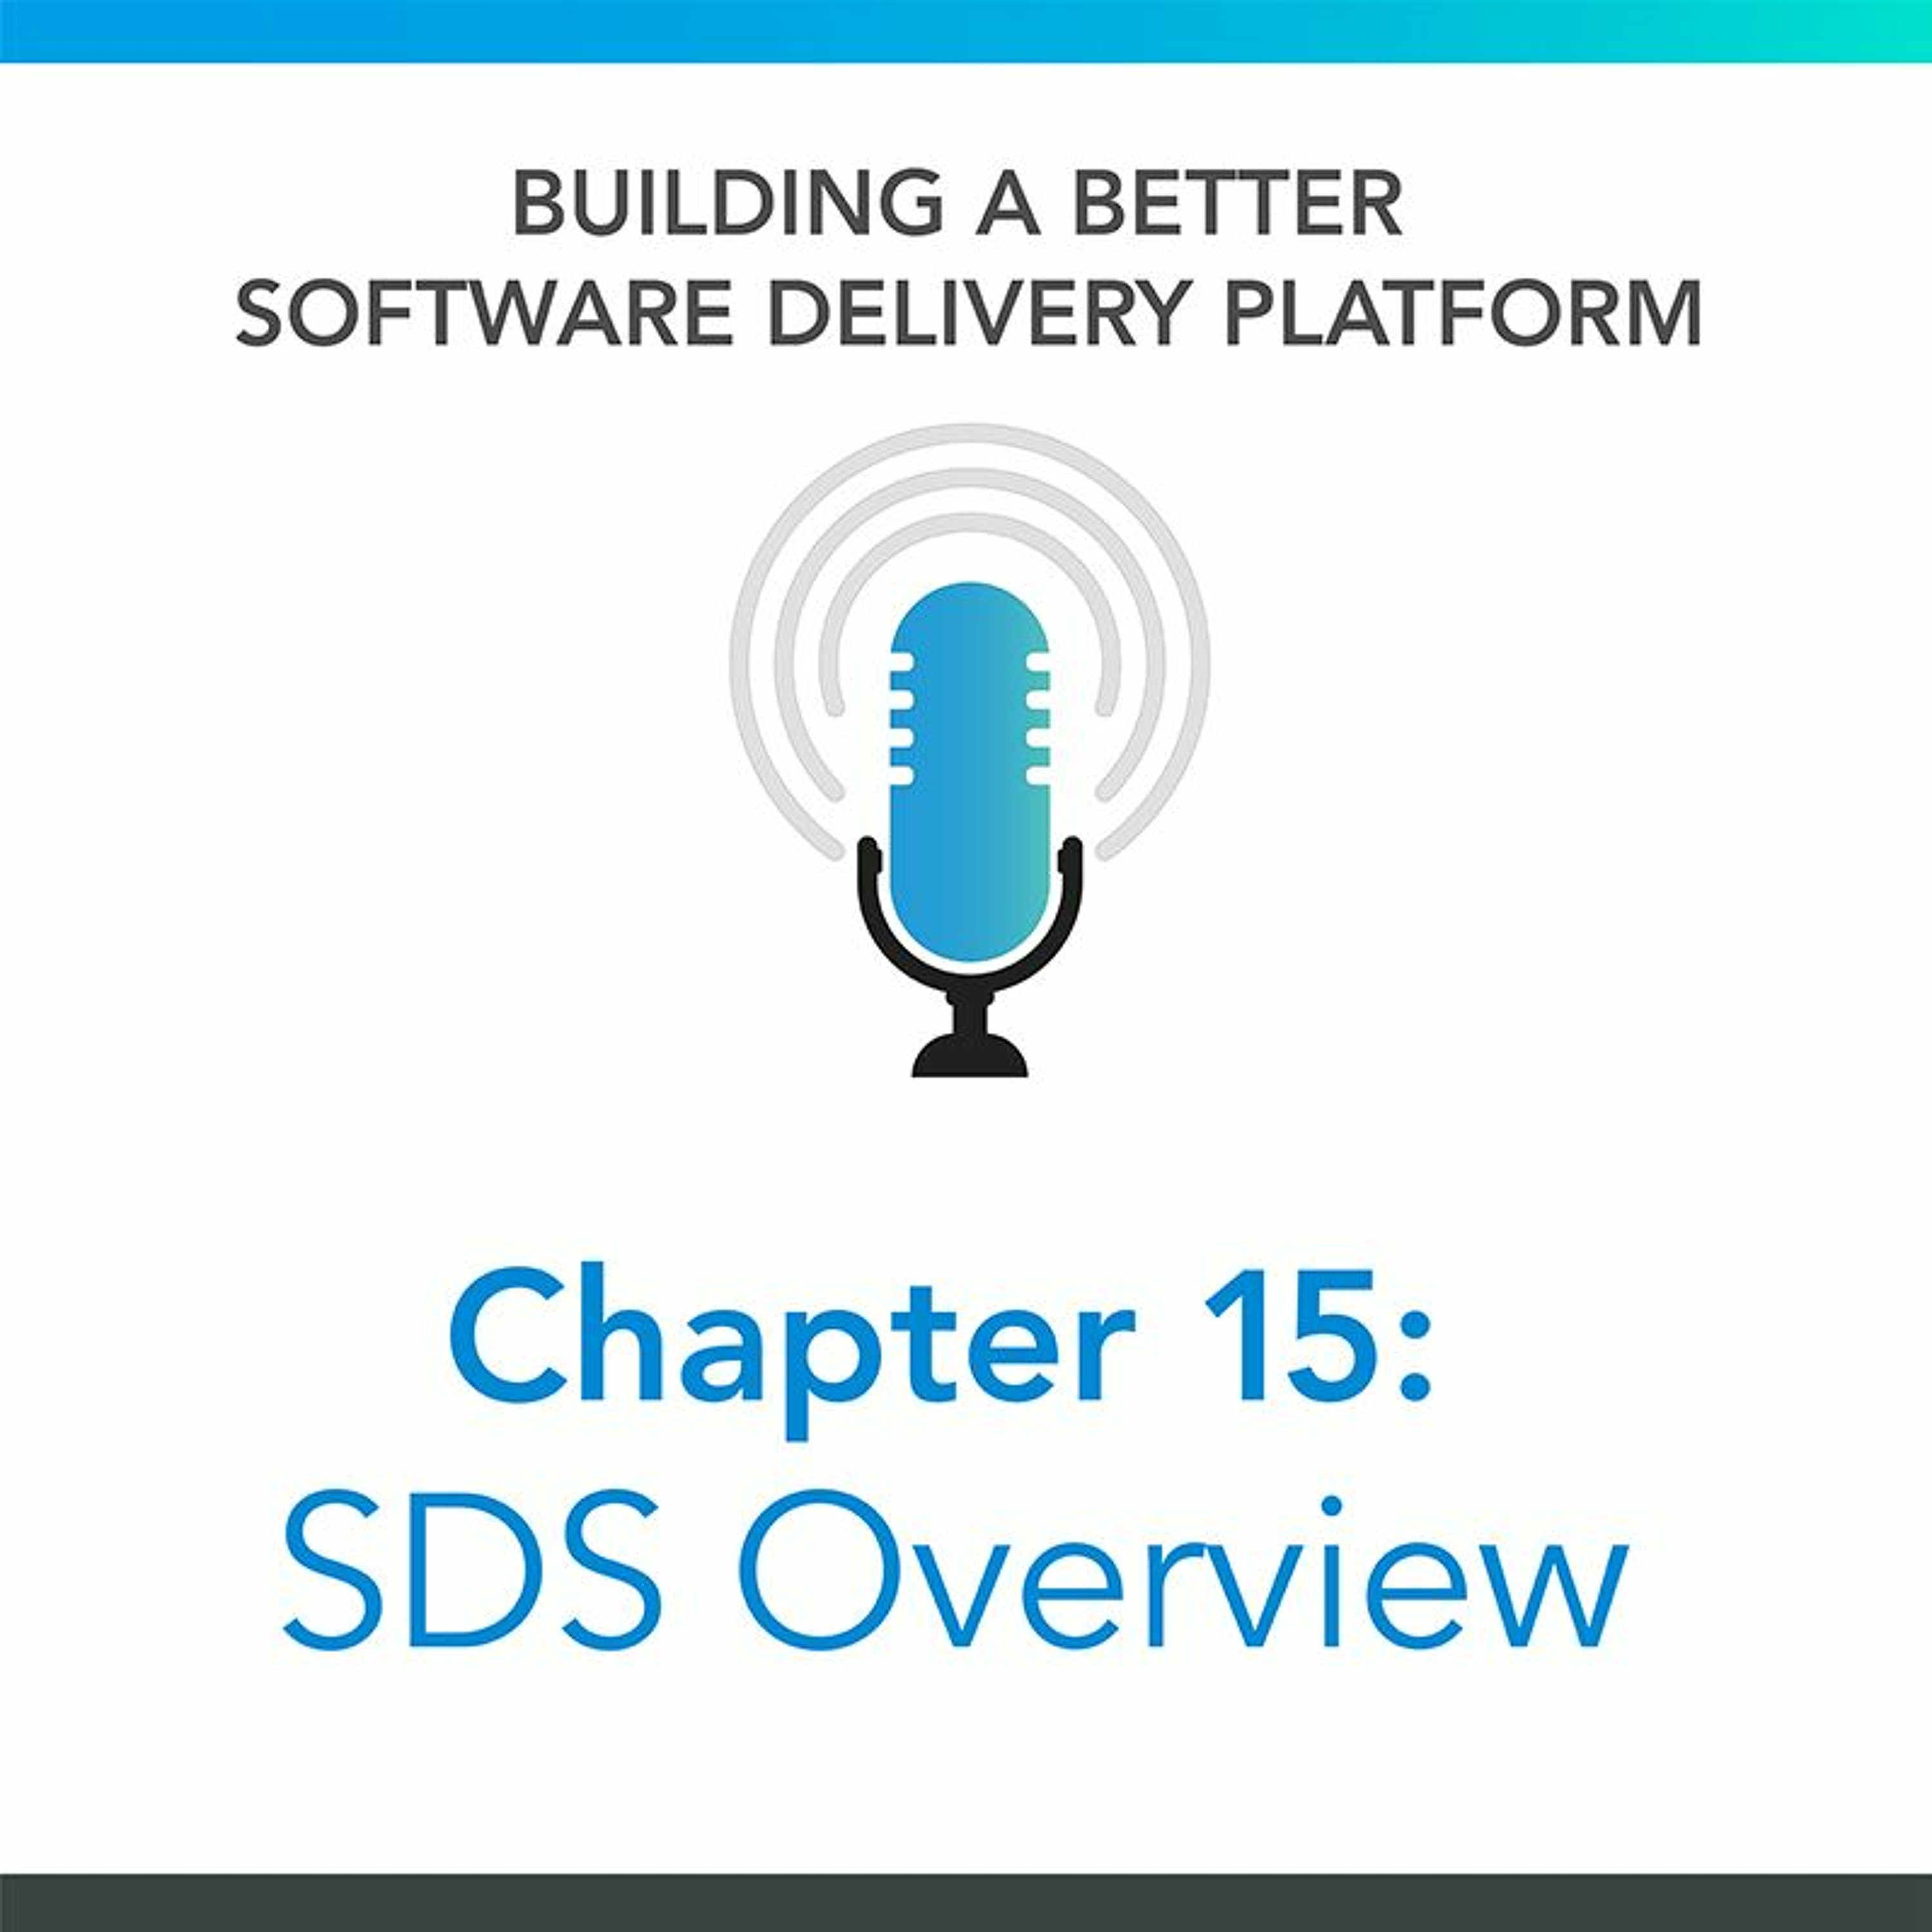 Chapter 15: SDS Overview